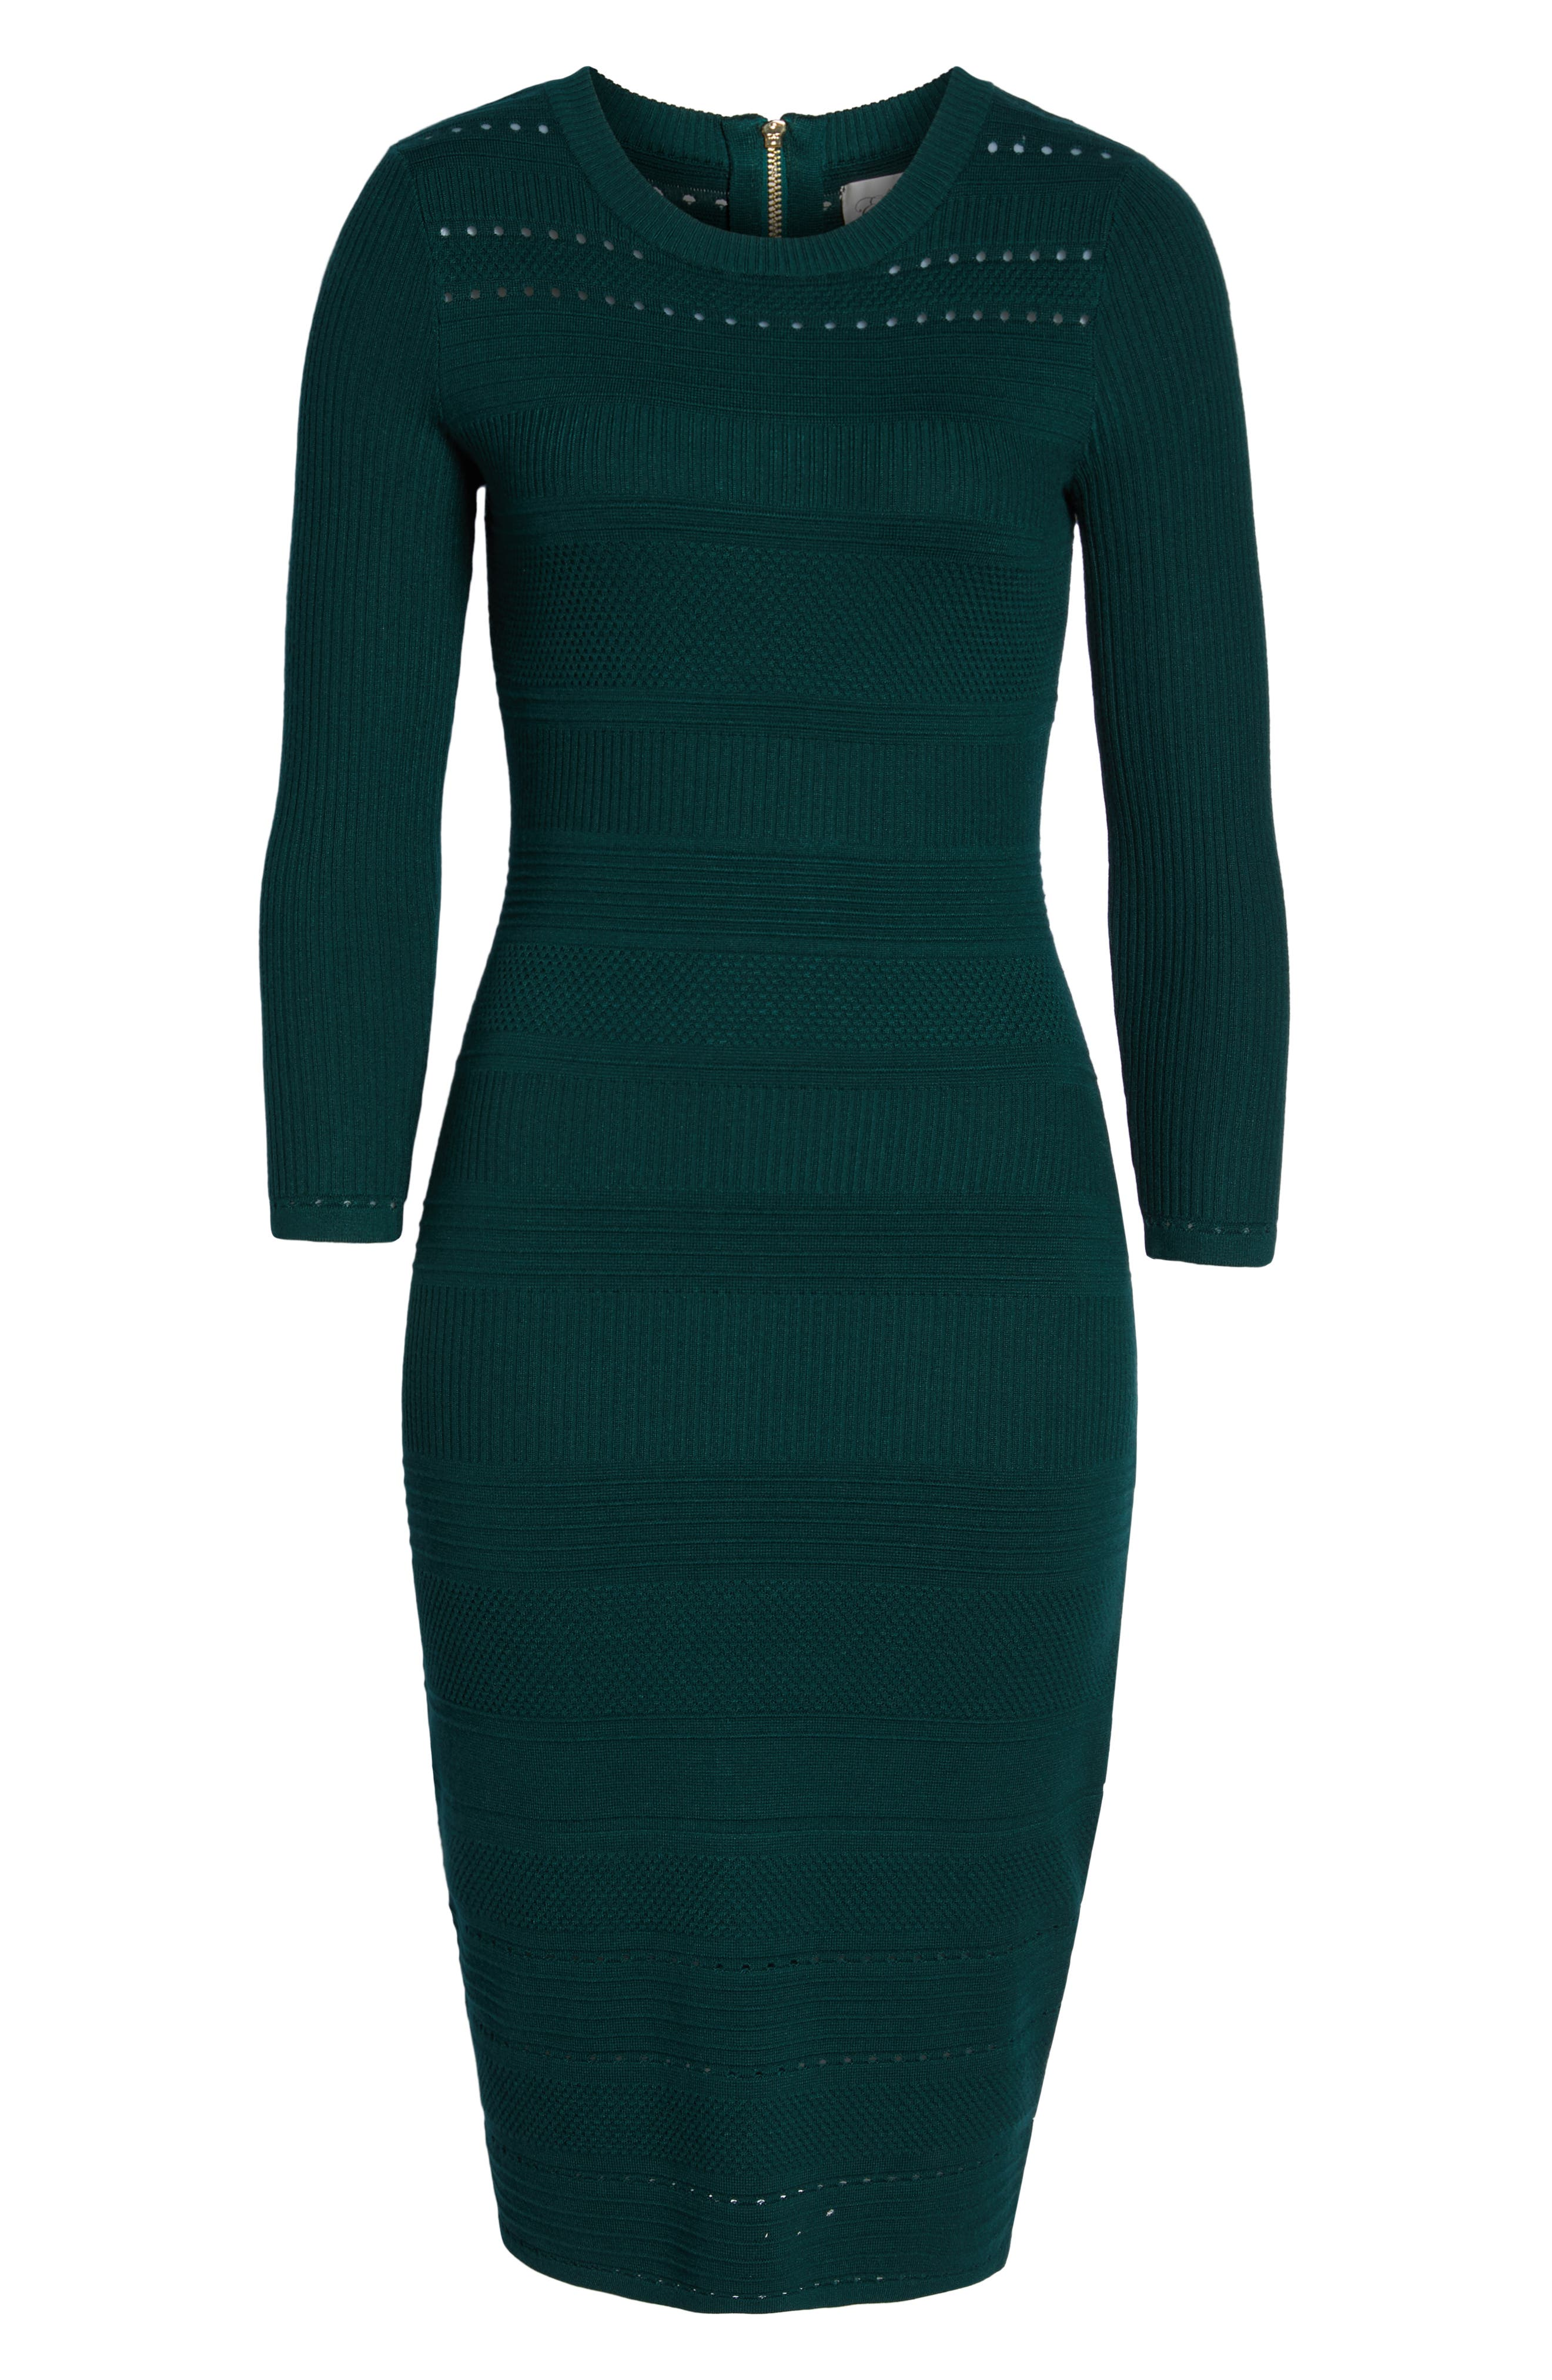 ELIZA J, Stitch Detail Sweater Dress, Alternate thumbnail 7, color, GREEN